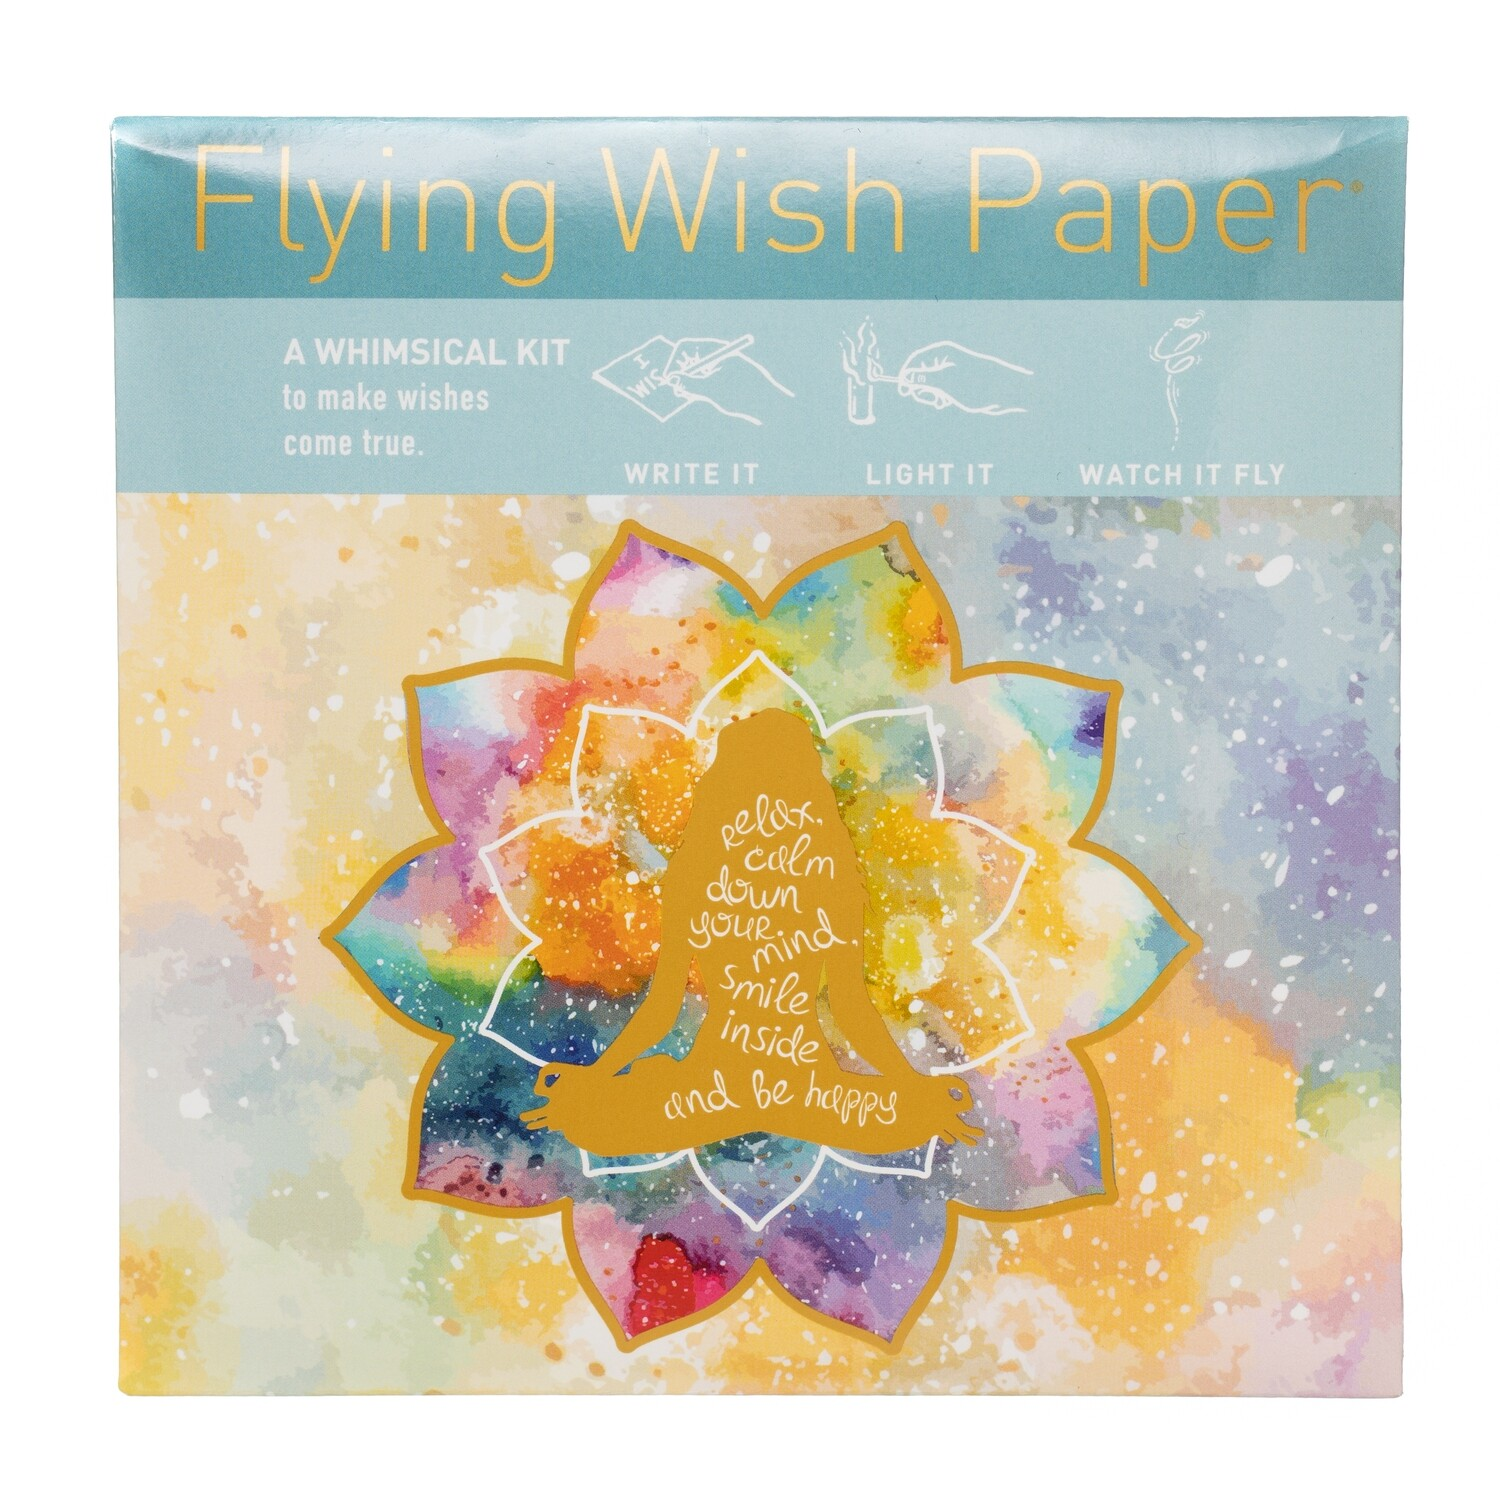 Flying Wishing Paper Mindfulness